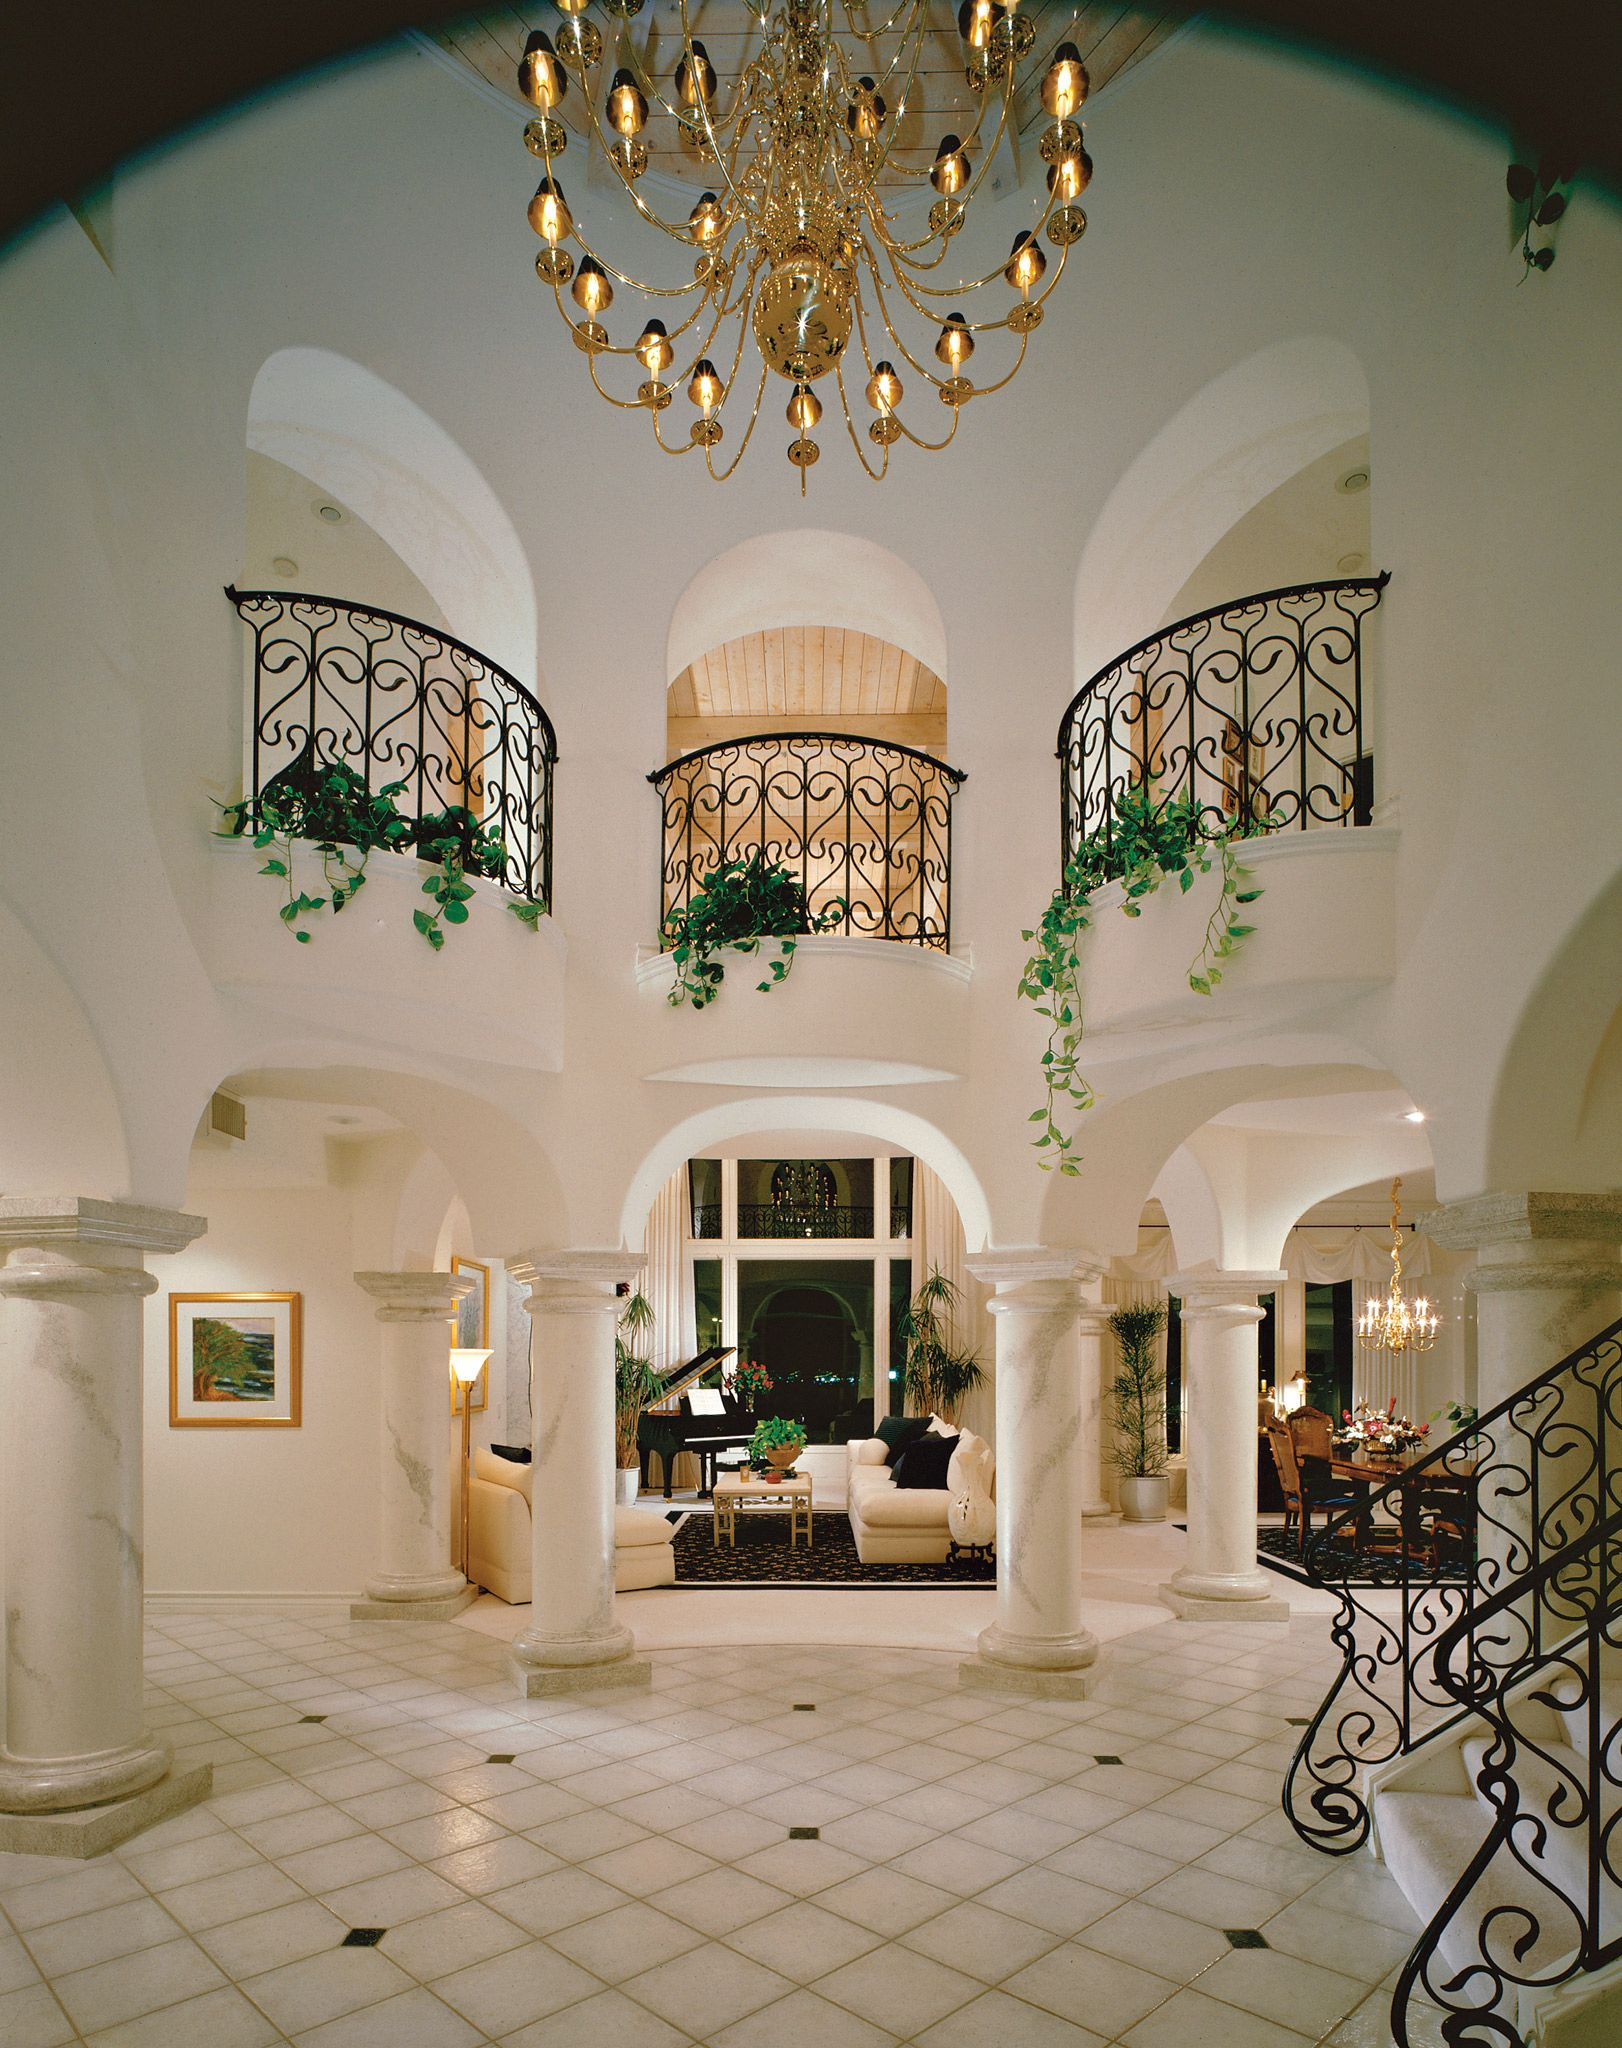 Amazing Interior Design Ideas For Home: Over 40 Different Foyer Design Ideas. Http://www.pinterest